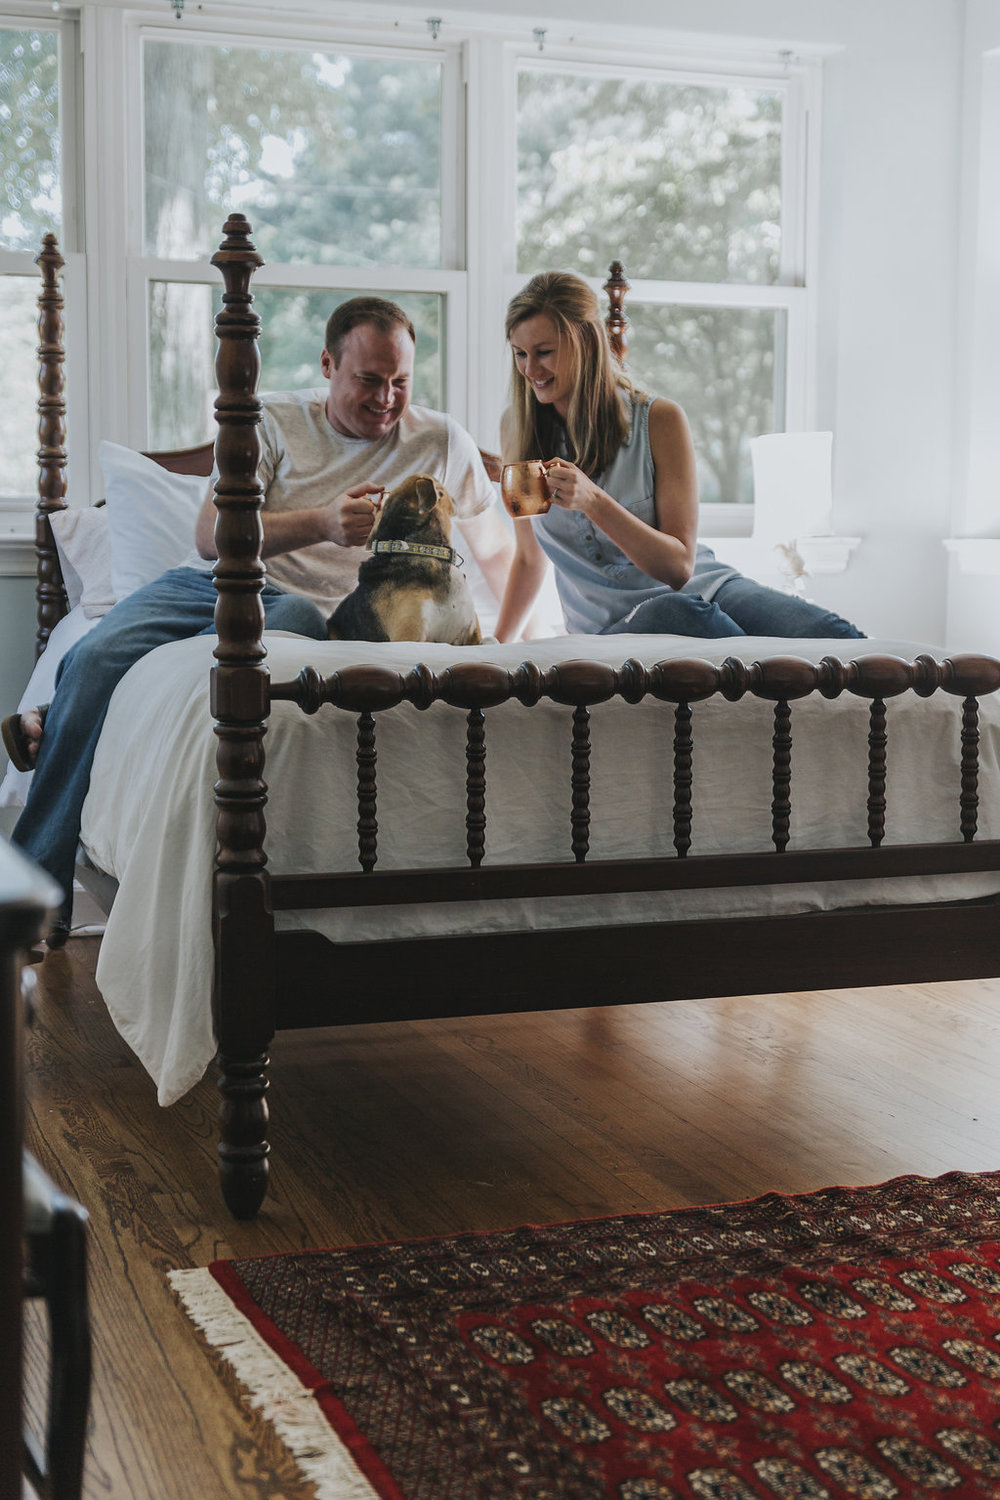 Kaitlyn Stoddard Wedding Photography Tennessee enjoying drinks on bed